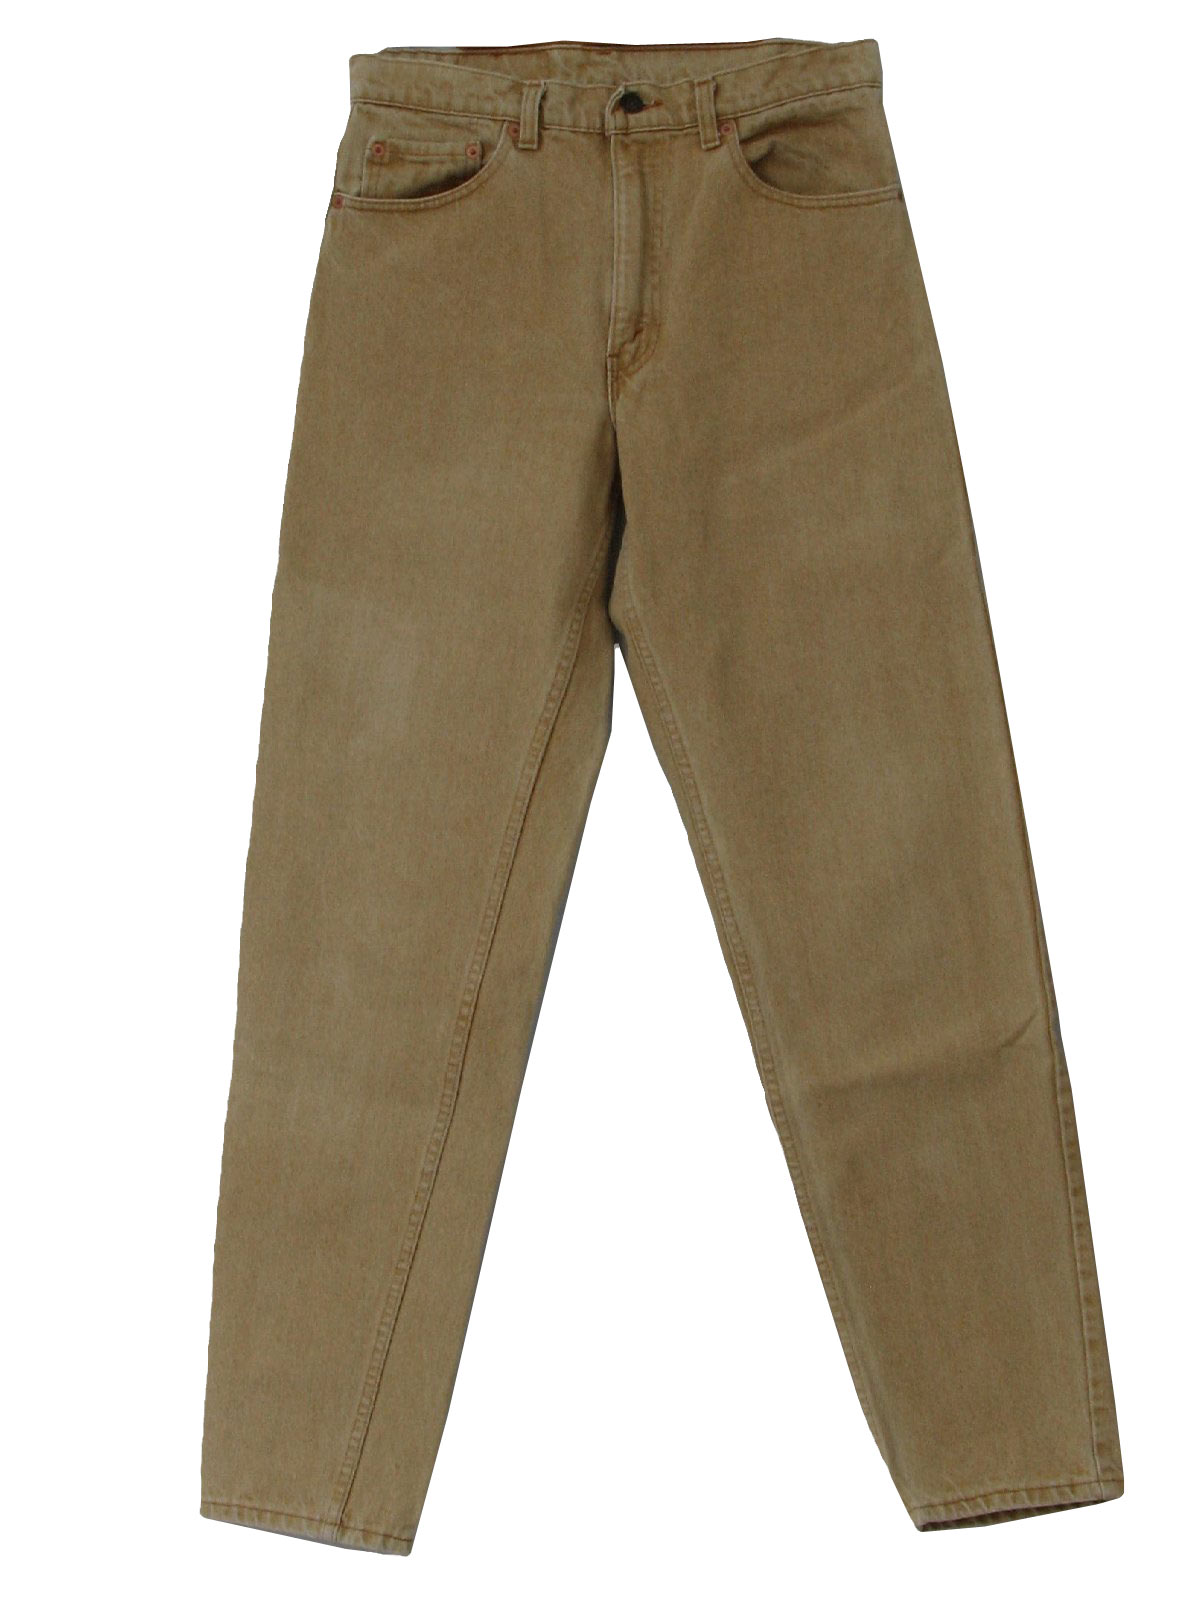 Vintage Levis 90's Pants: 90s -Levis- Mens light sand colored ...